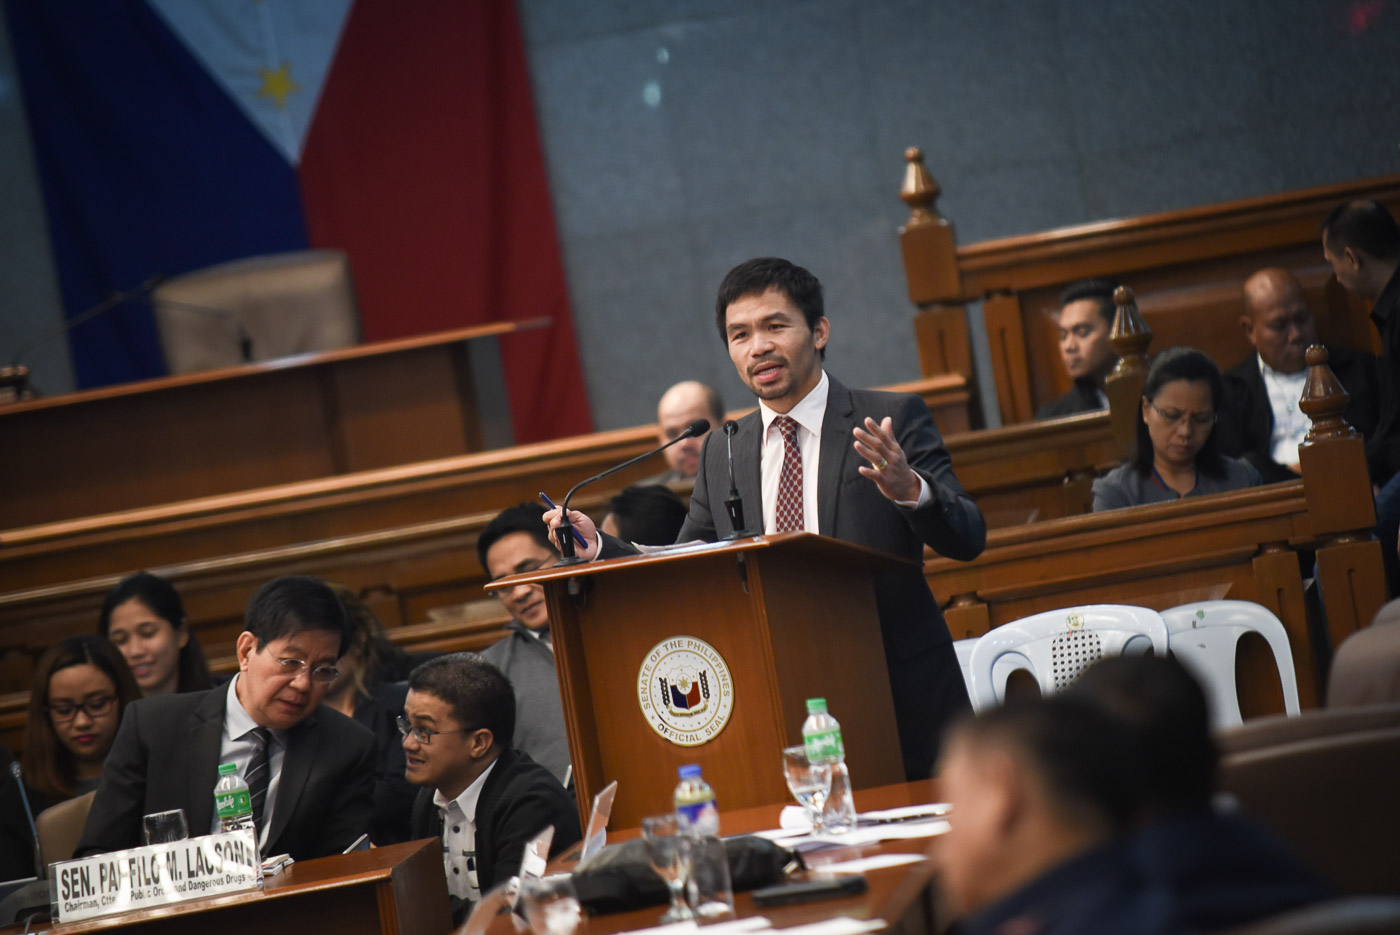 MEETING. Senators confirm meeting on February 26, 2017 at Senator Manny Pacquiao's house to plan the ouster of the Liberal Party senators from their key posts. File photo by LeAnne Jazul/Rappler